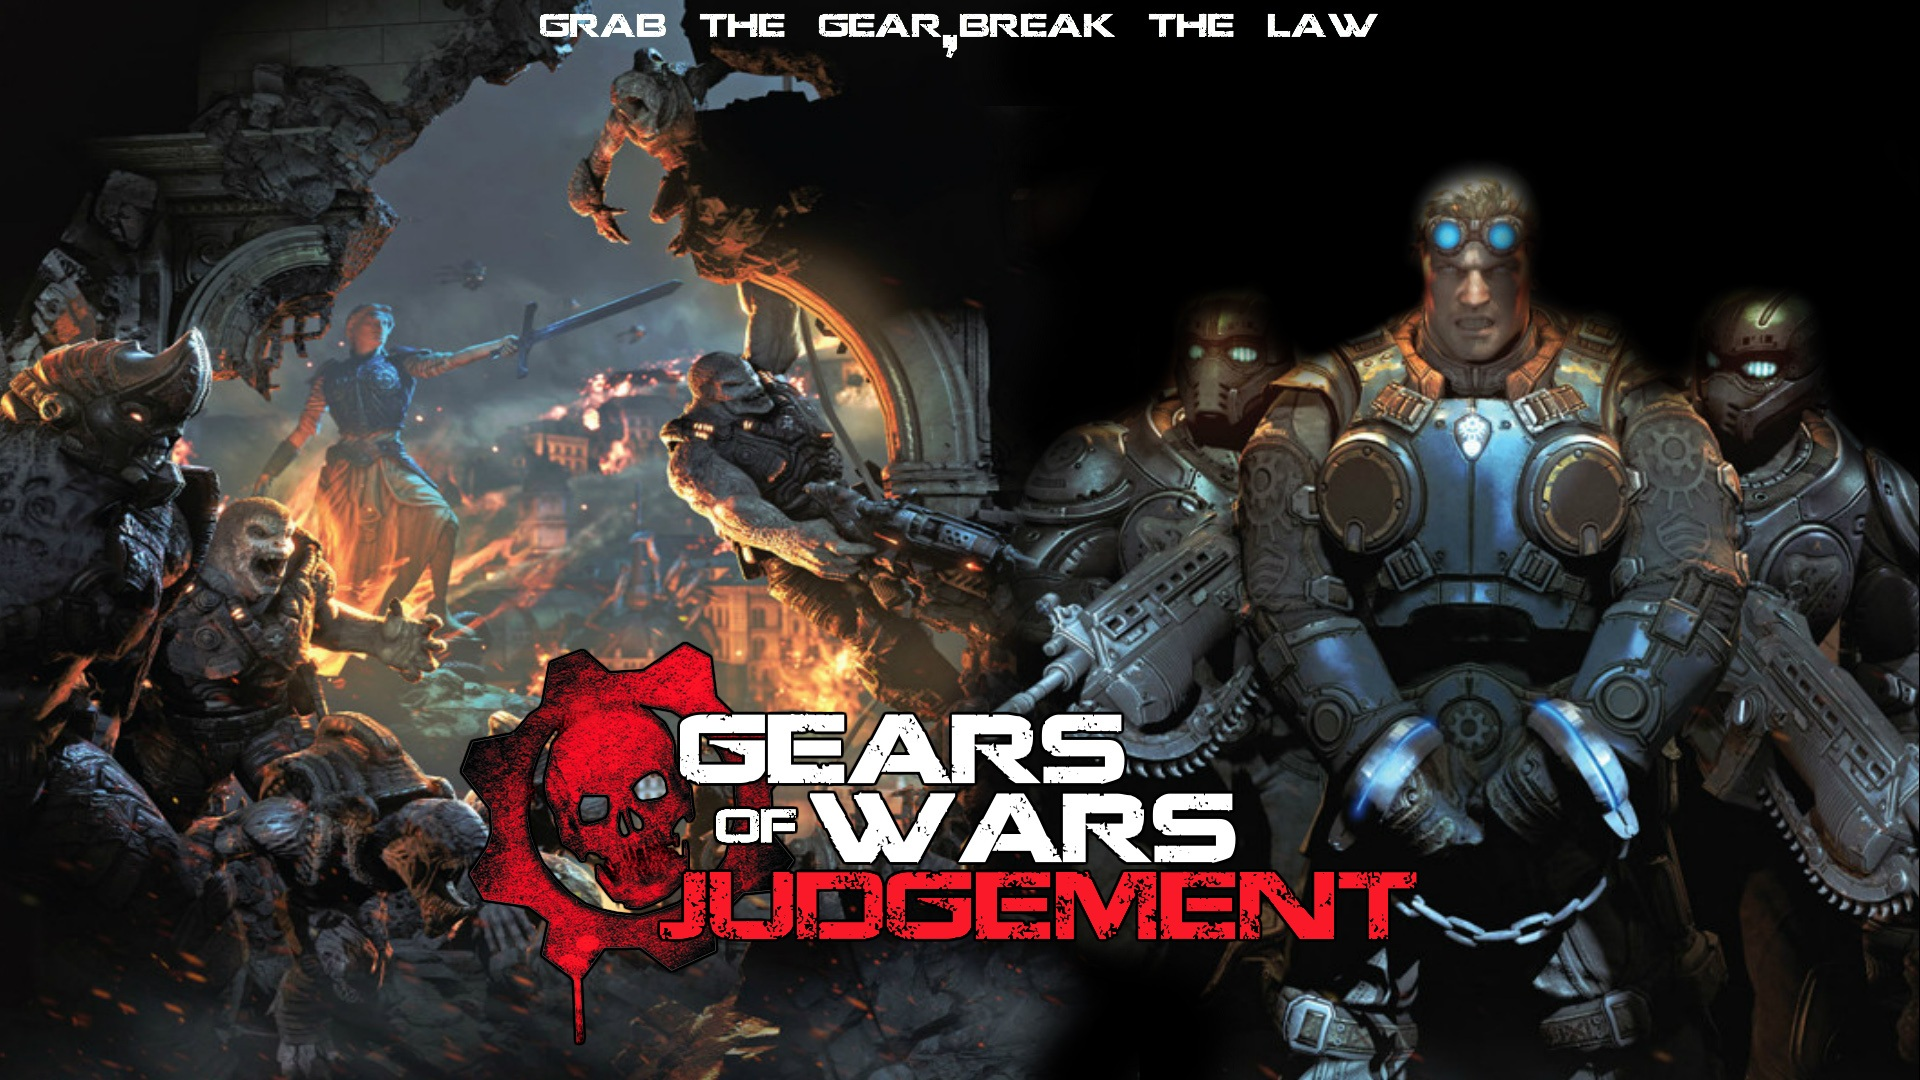 Wallpaper Gears Of War Judgment HD 1920x1080 Full Picture Image